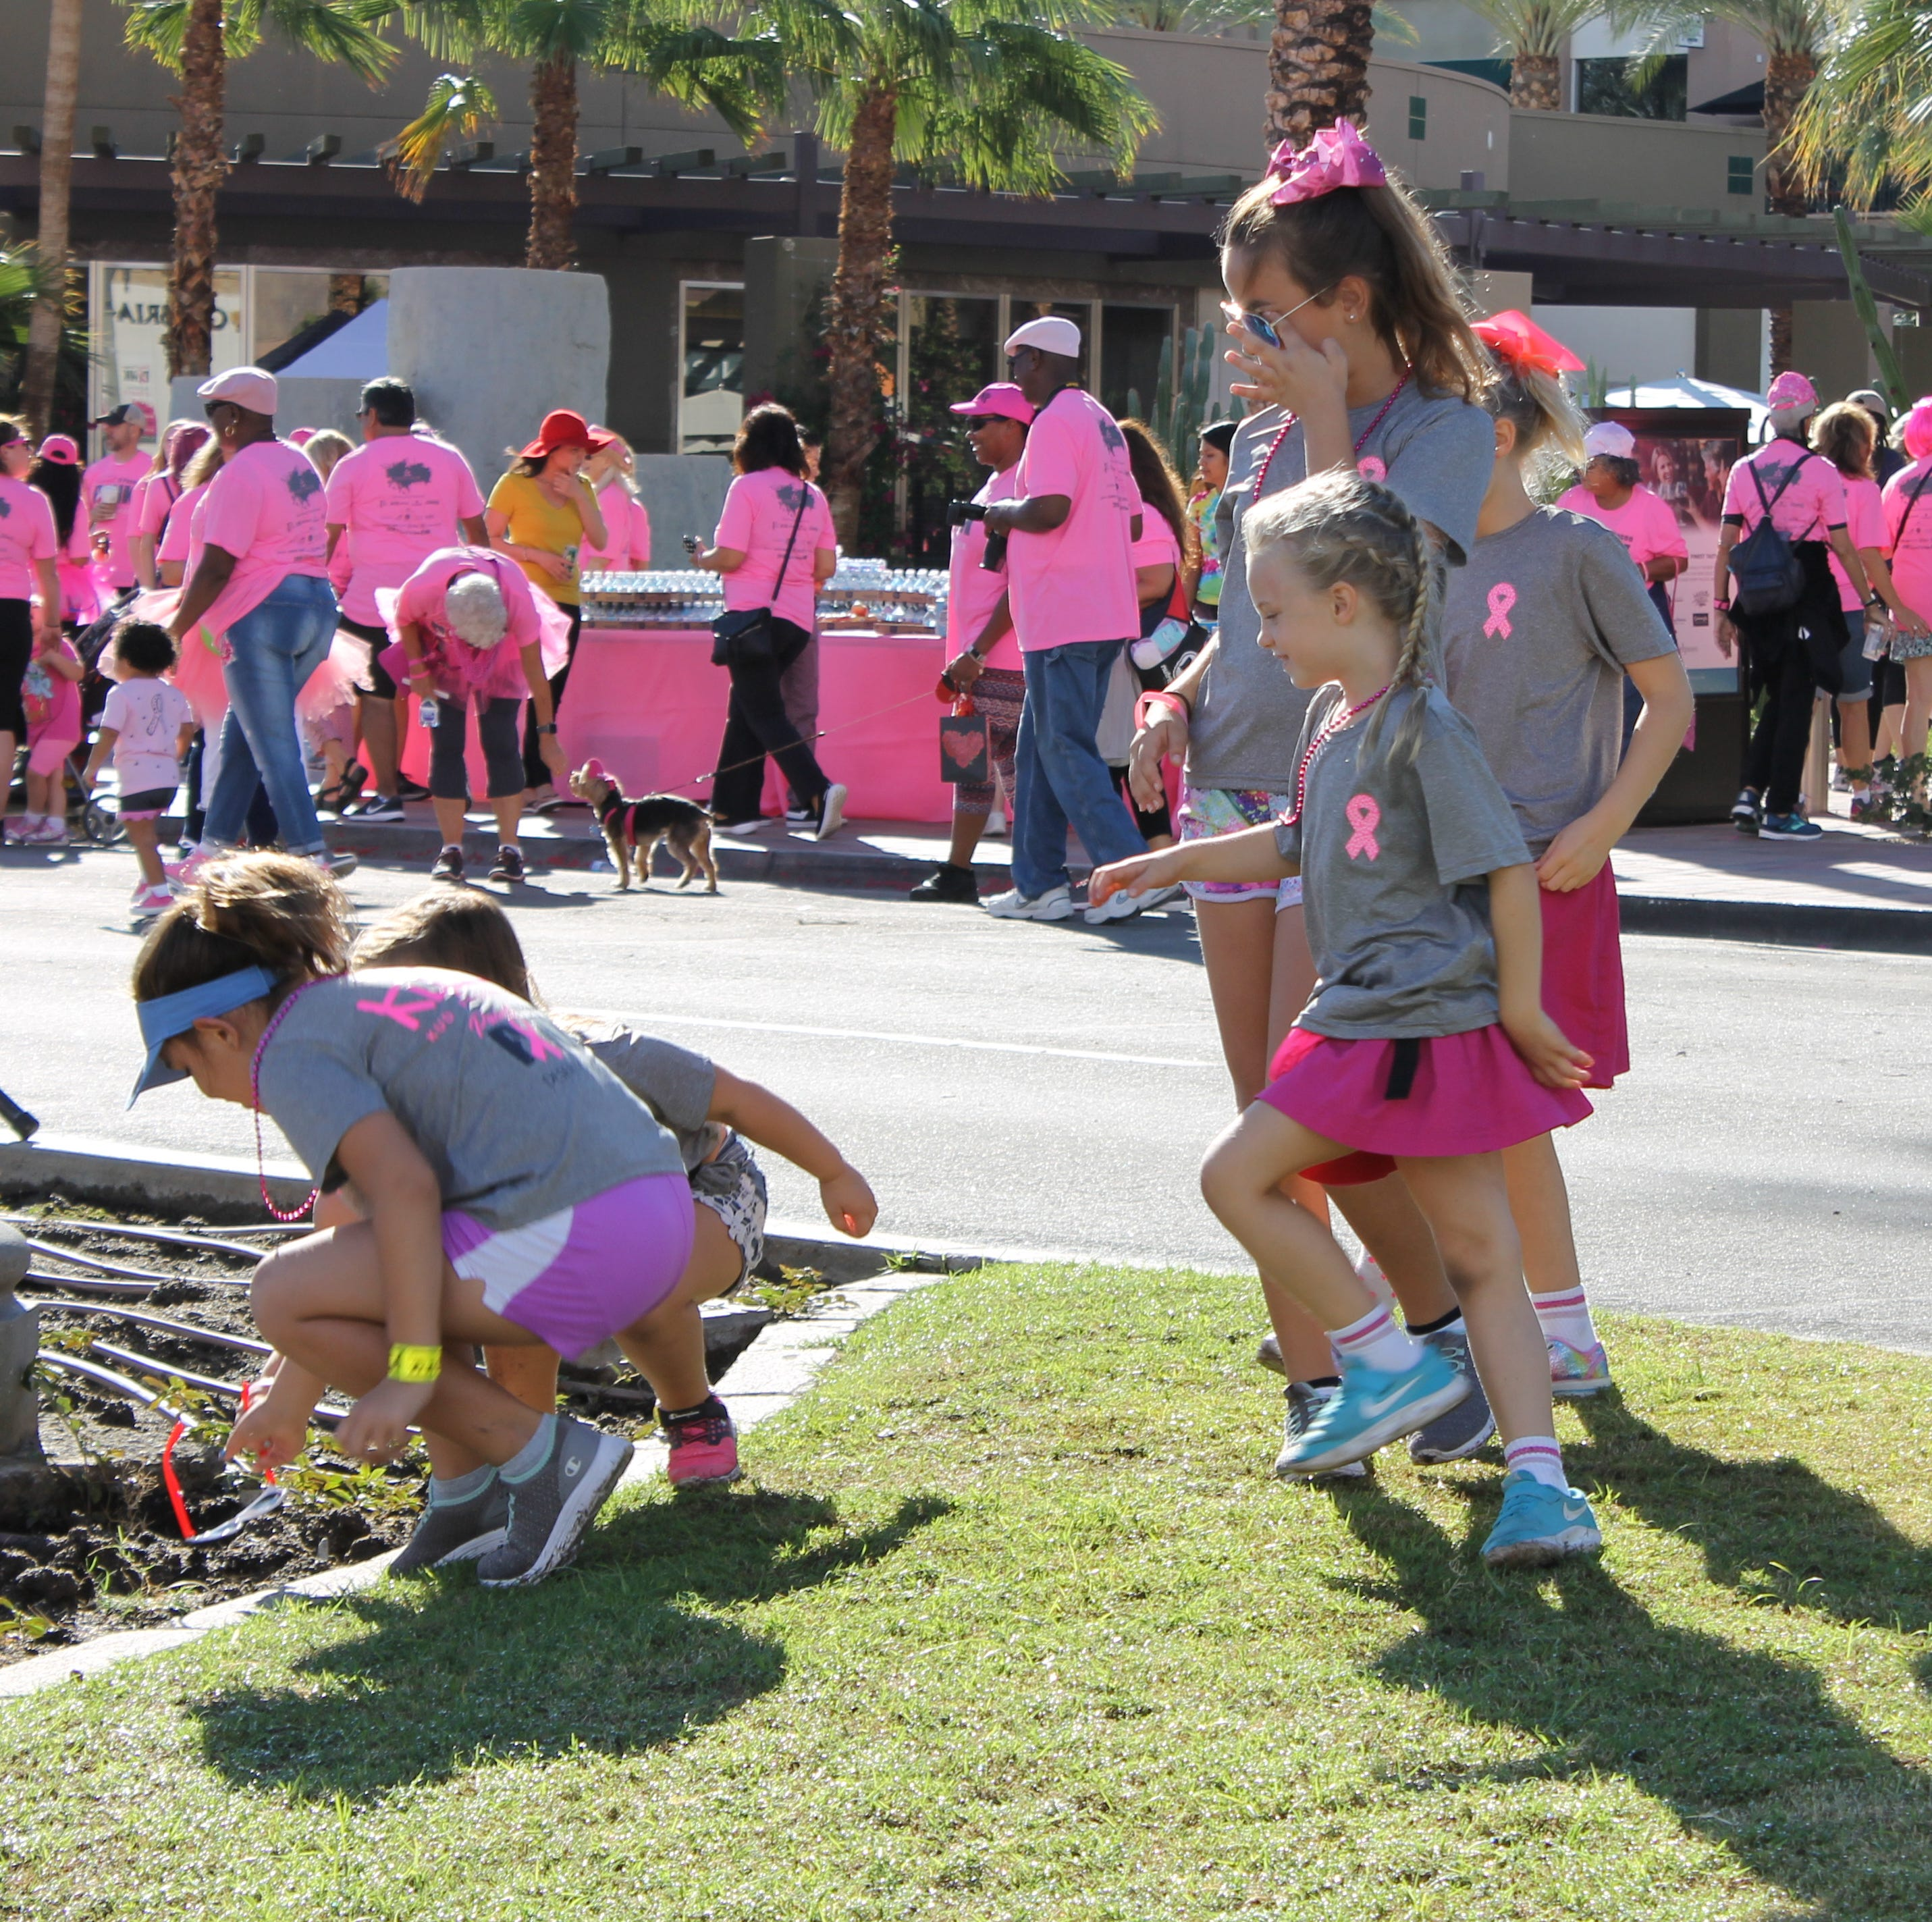 Paint El Paseo Pink strives to raise money for Desert Cancer Foundation